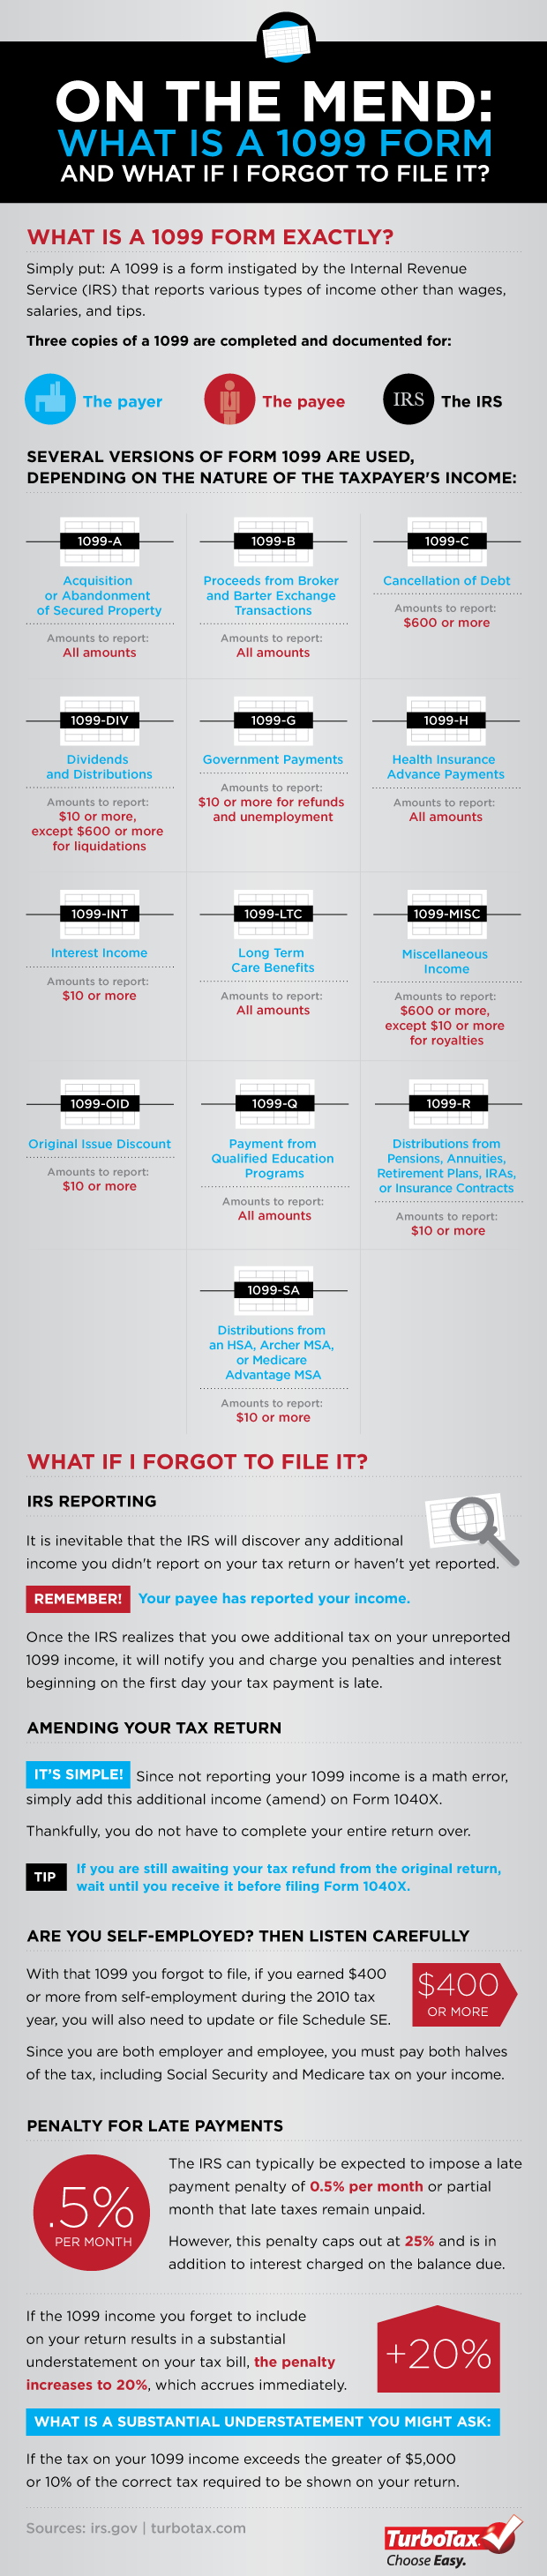 On the mend what is a 1099 tax form and what if i forgot to file back taxes falaconquin